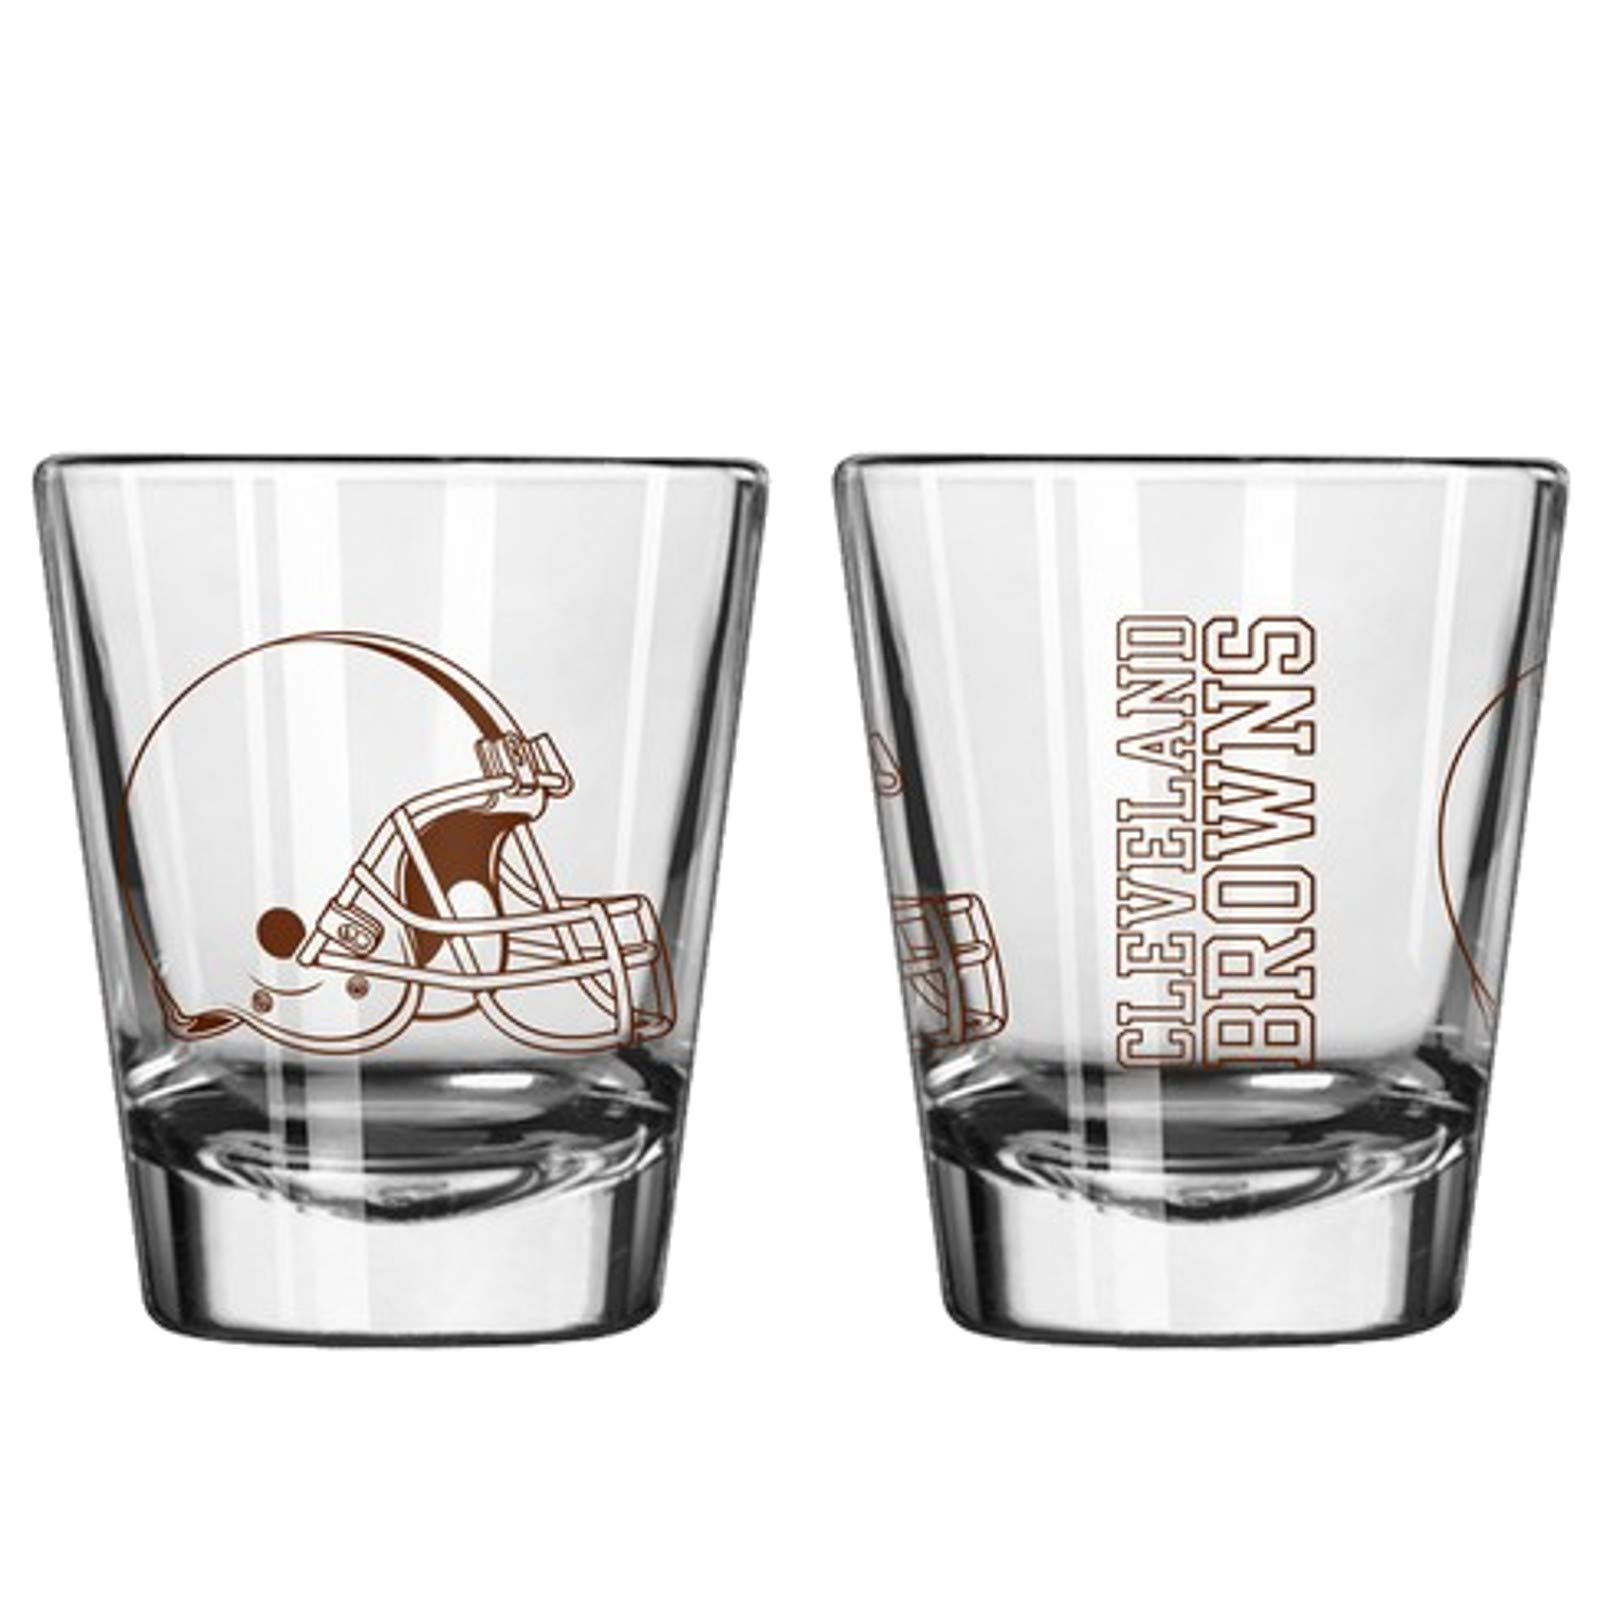 Official Fan Shop Authentic NFL Logo 2 oz Shot Glasses 2-Pack Bundle. Show Team Pride at Home, Your Bar at The Tailgate. Gameday Shot Glasses a Goodnight (Cleveland Browns)